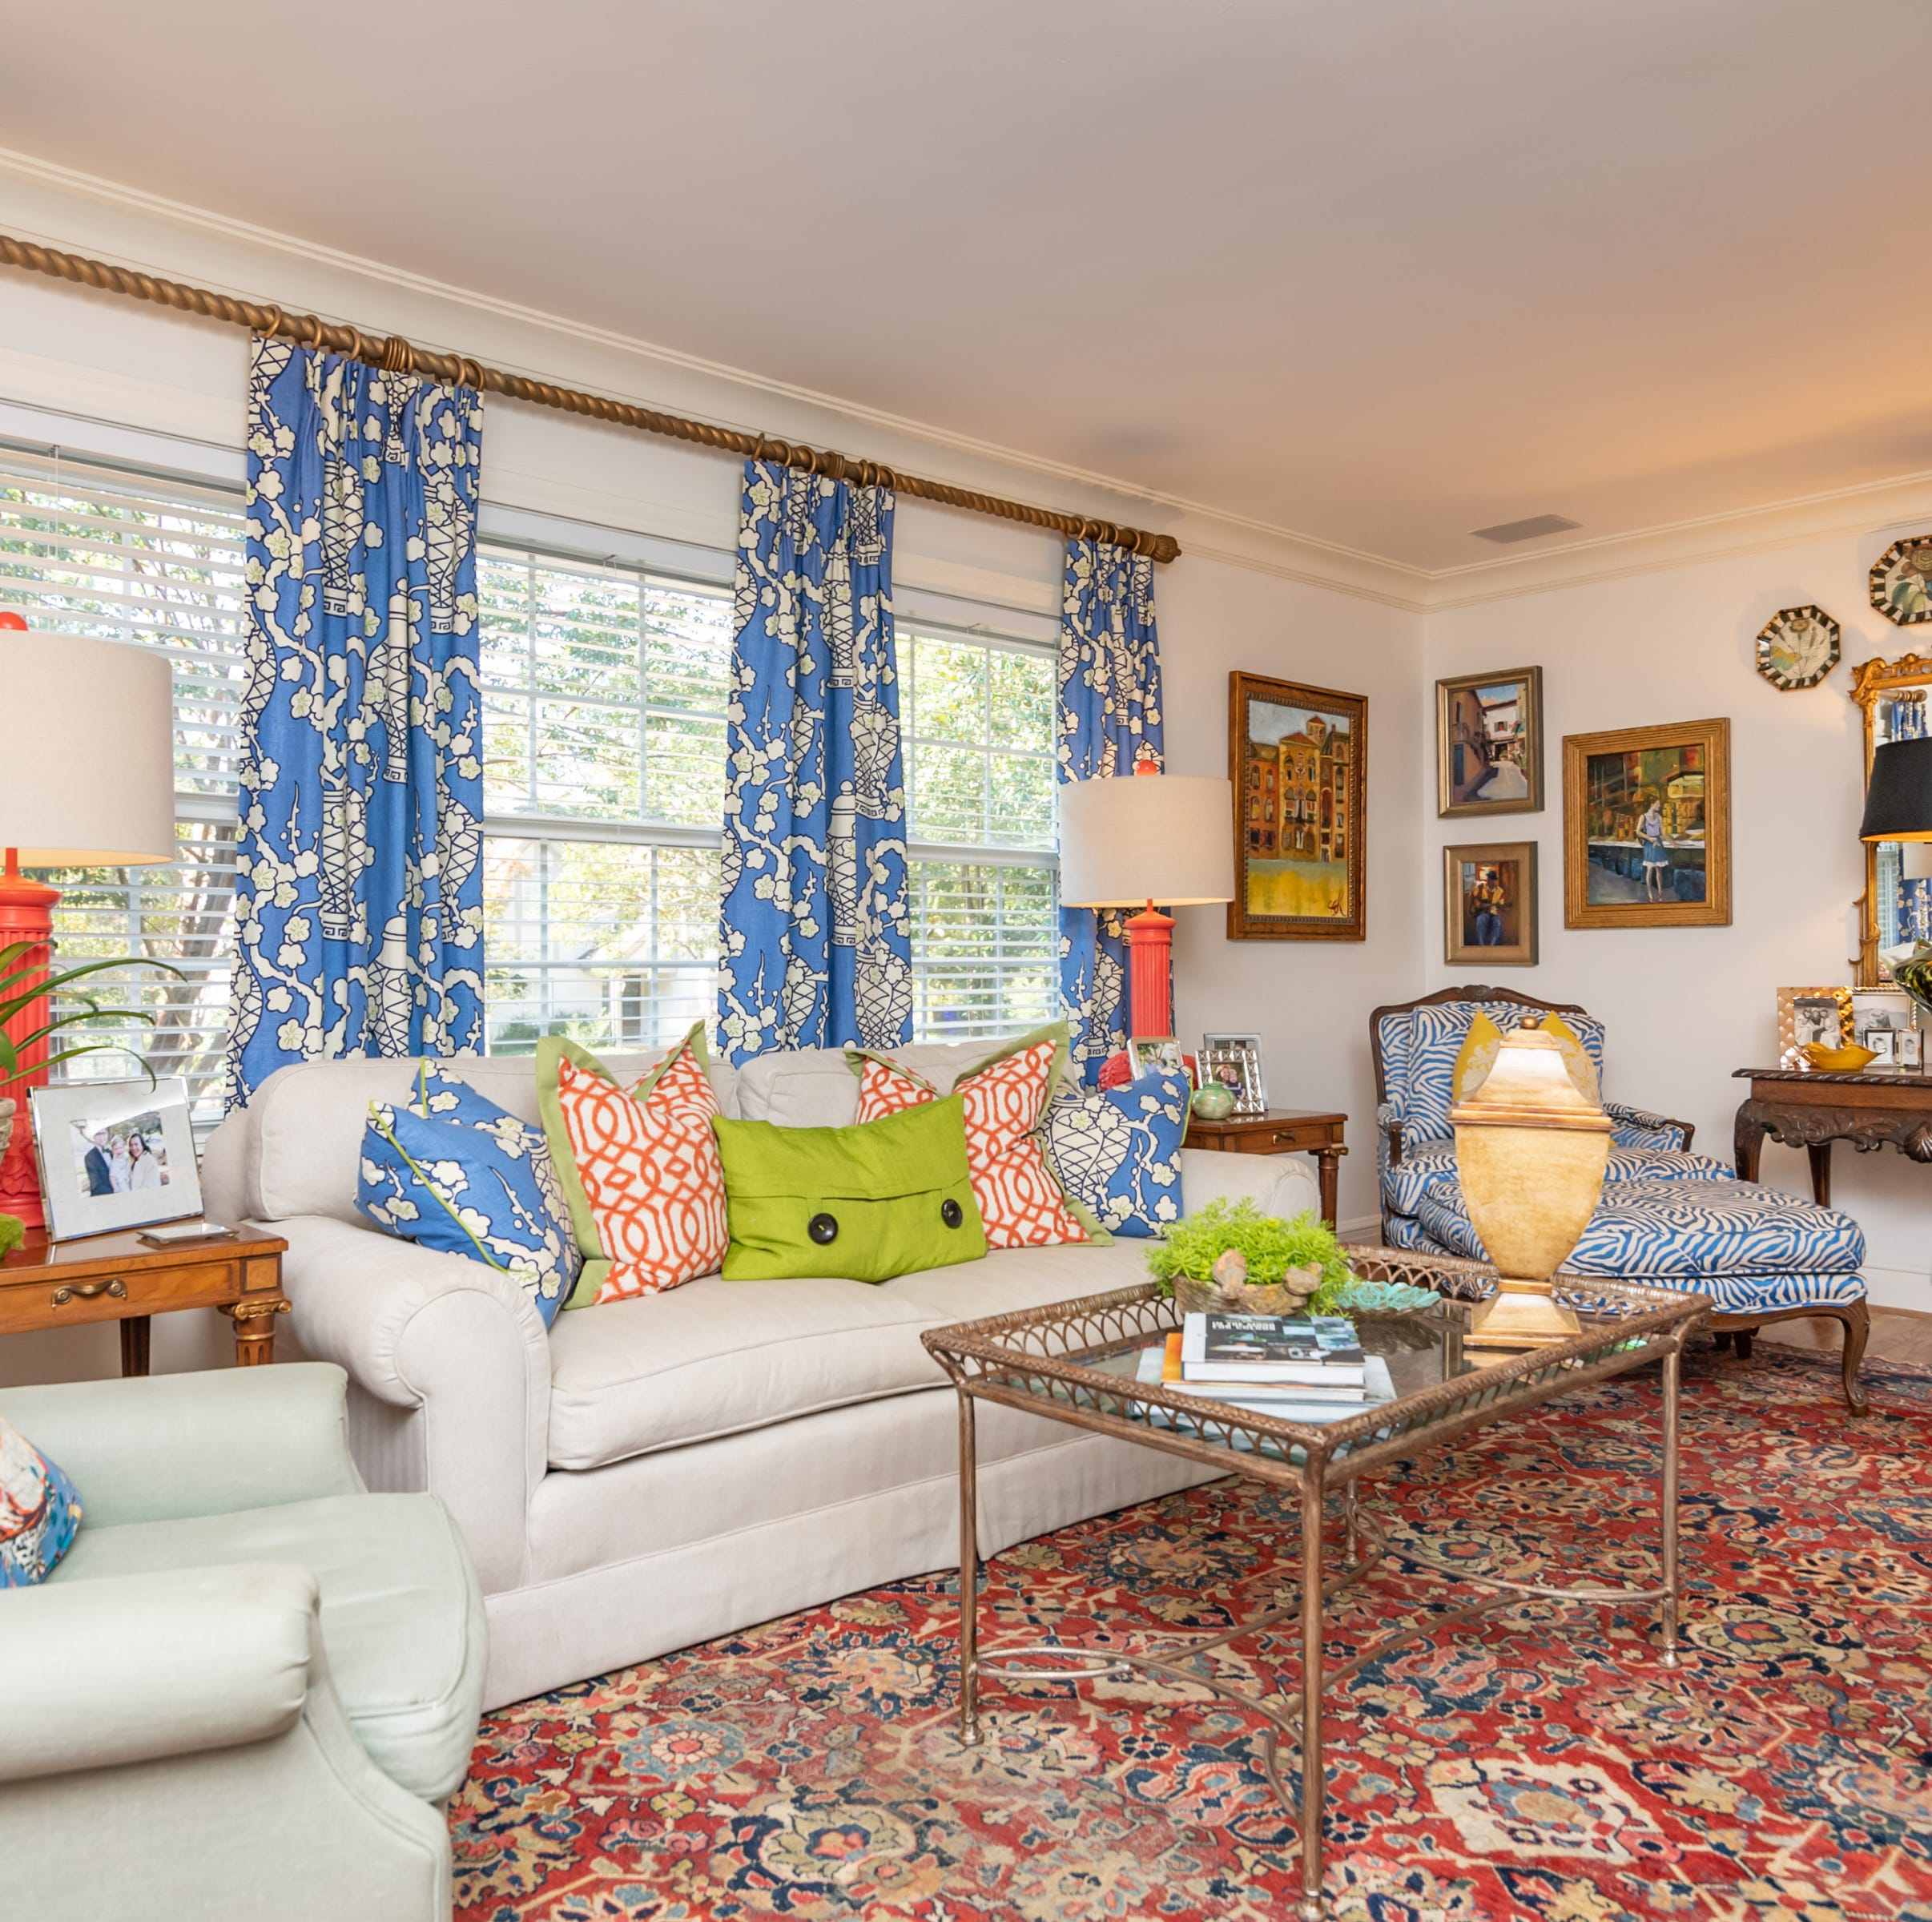 TALK Greenville Home: Ranch, reinvented